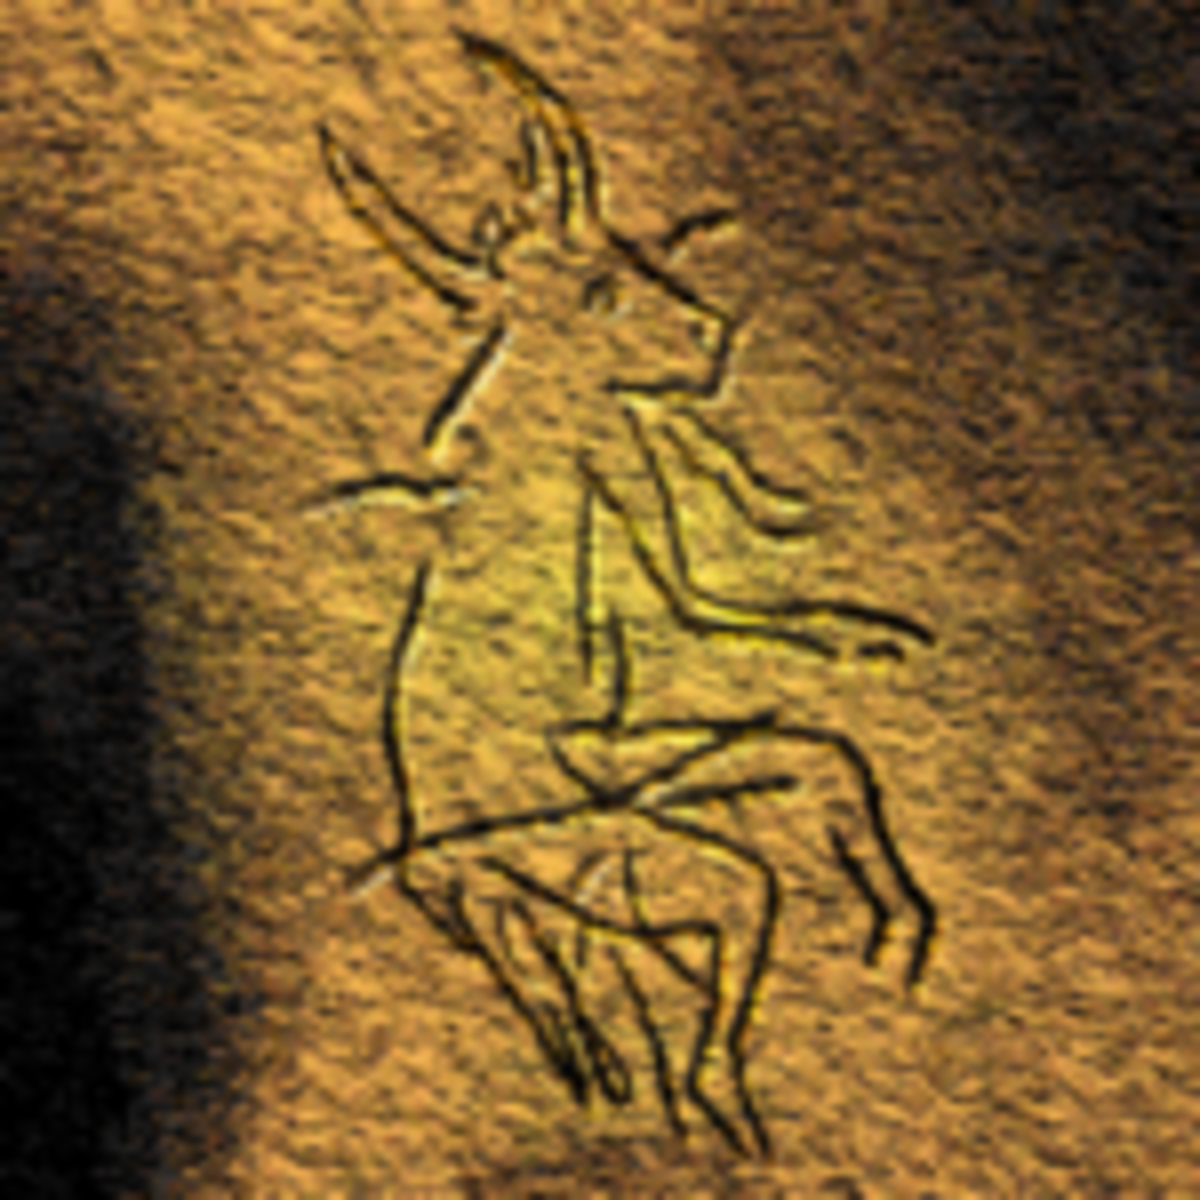 Dordogne, France, cave painting o a half-human, half-animal being.